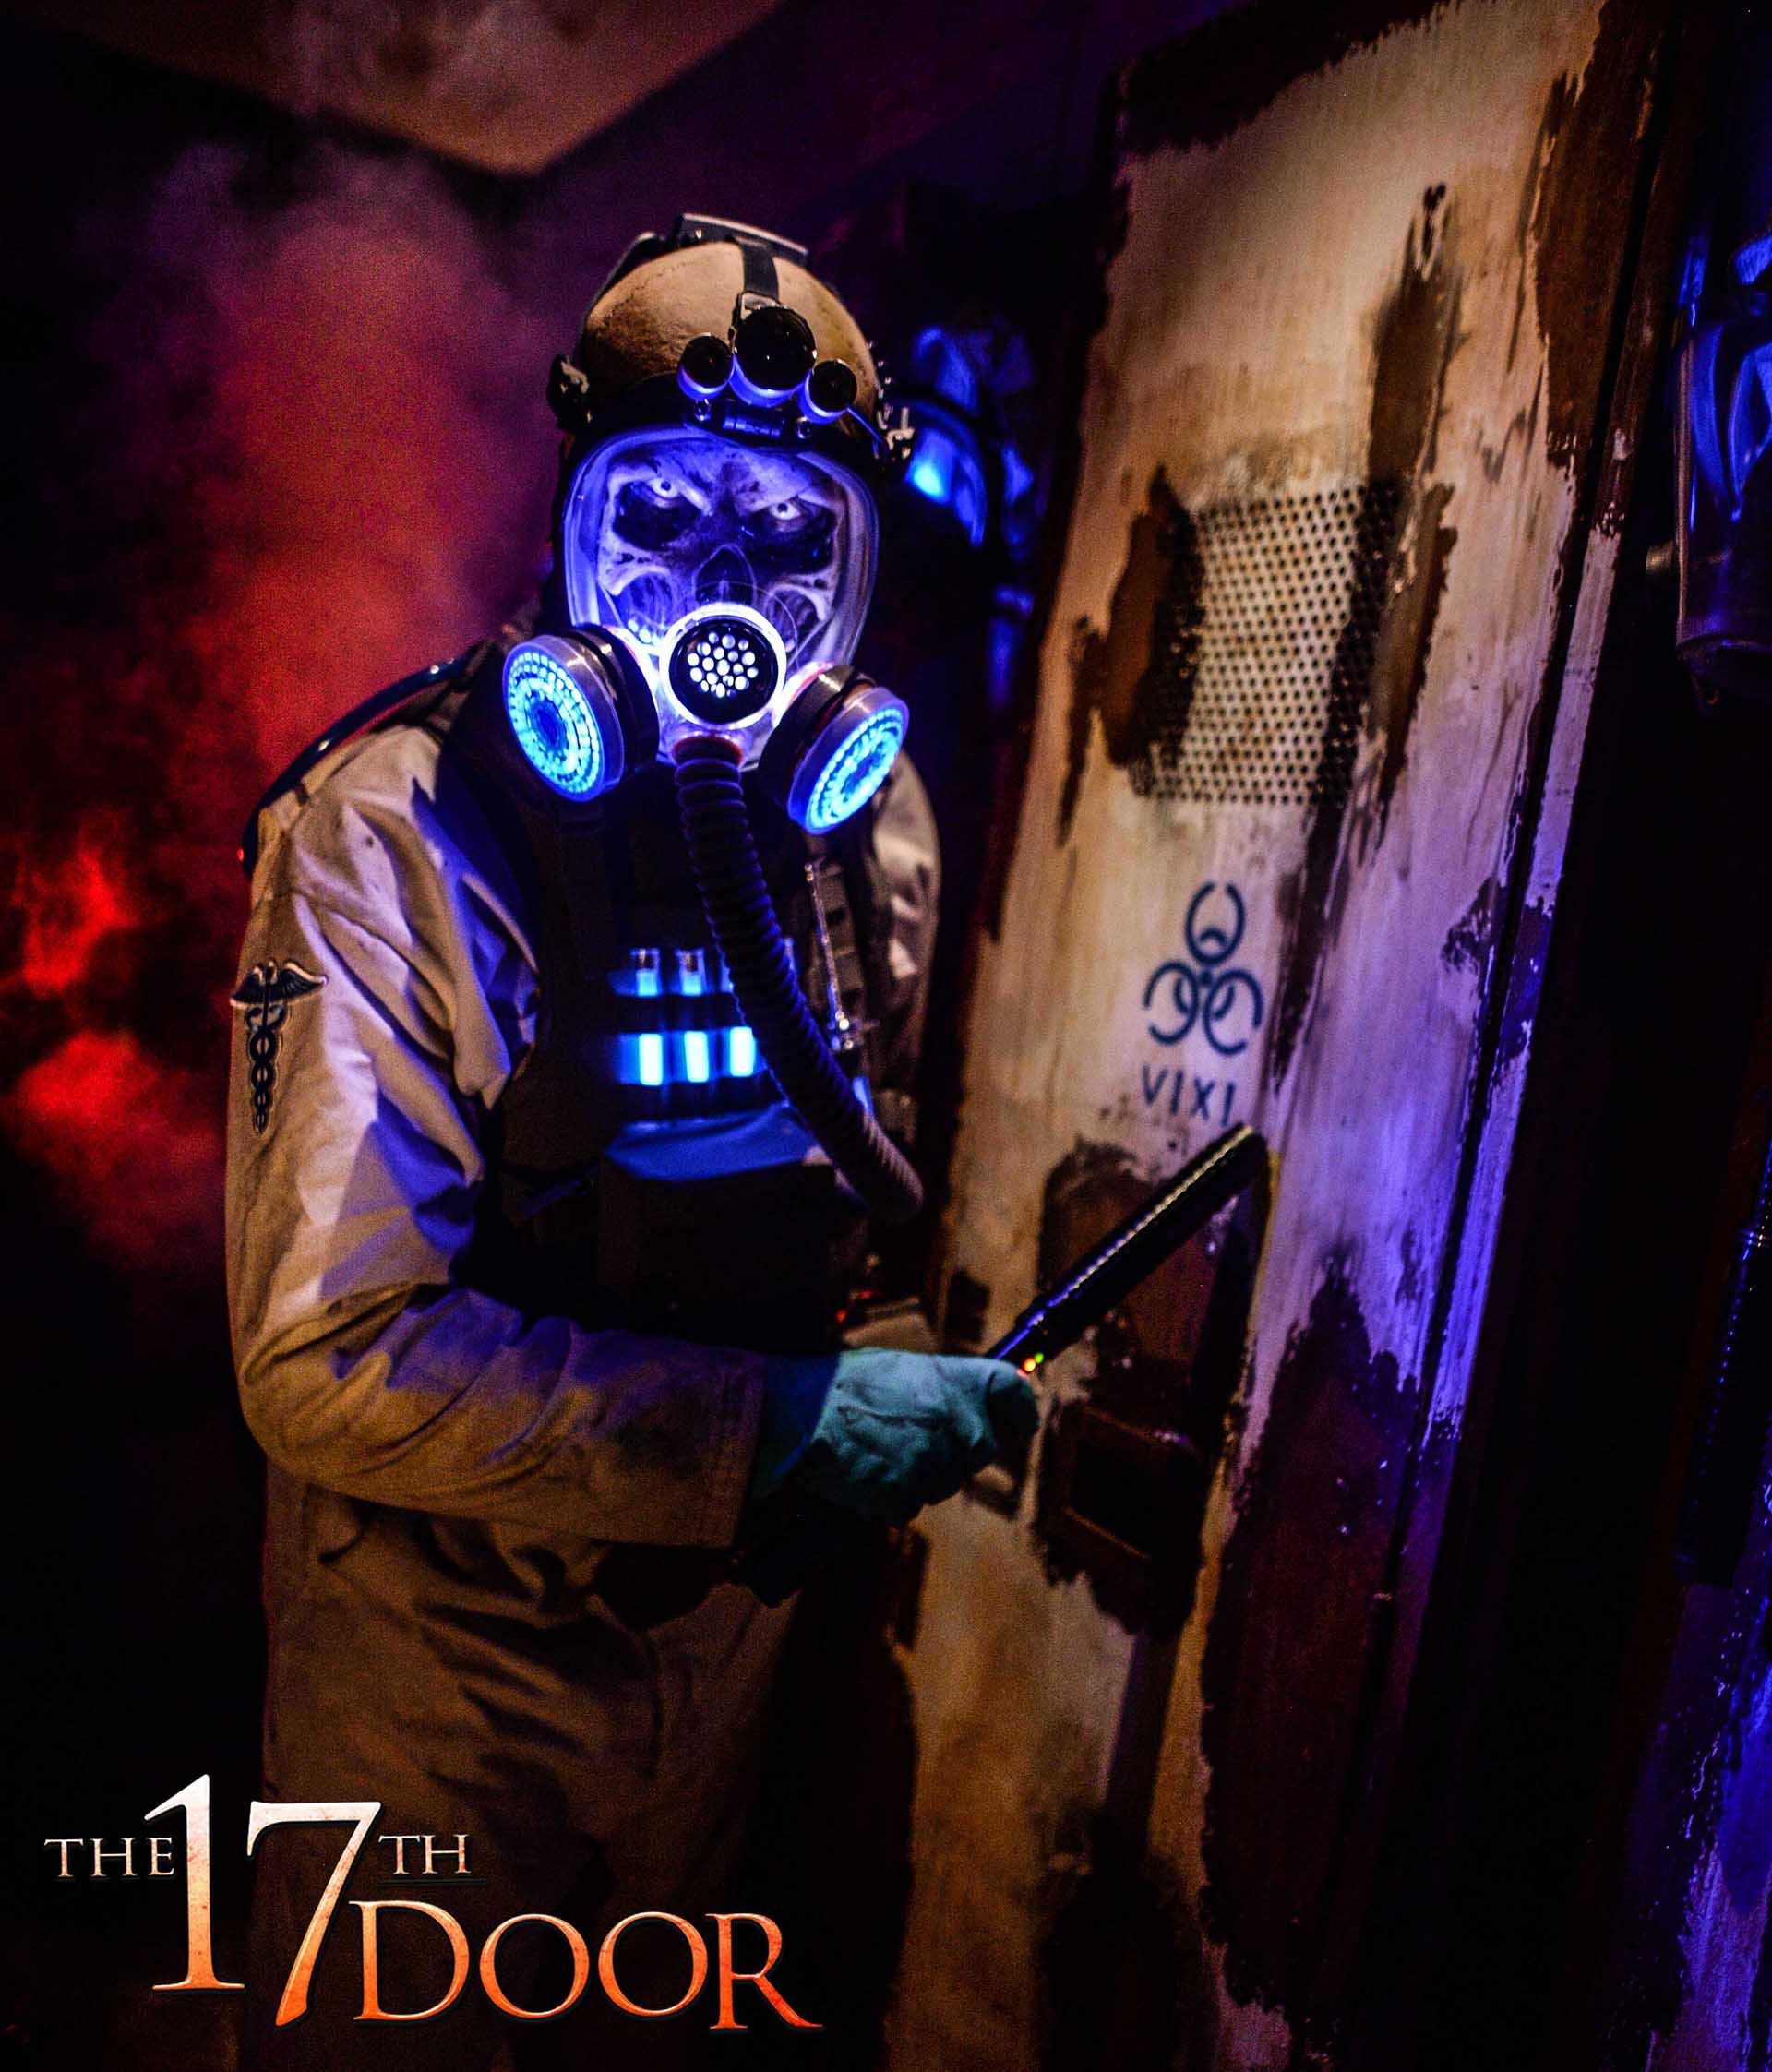 The 17th Door once again brings back a plethora of squeamish scares, from old and infamous tricks to new gags that will shock and astound.  (Photo courtesy of The 17th Door.)